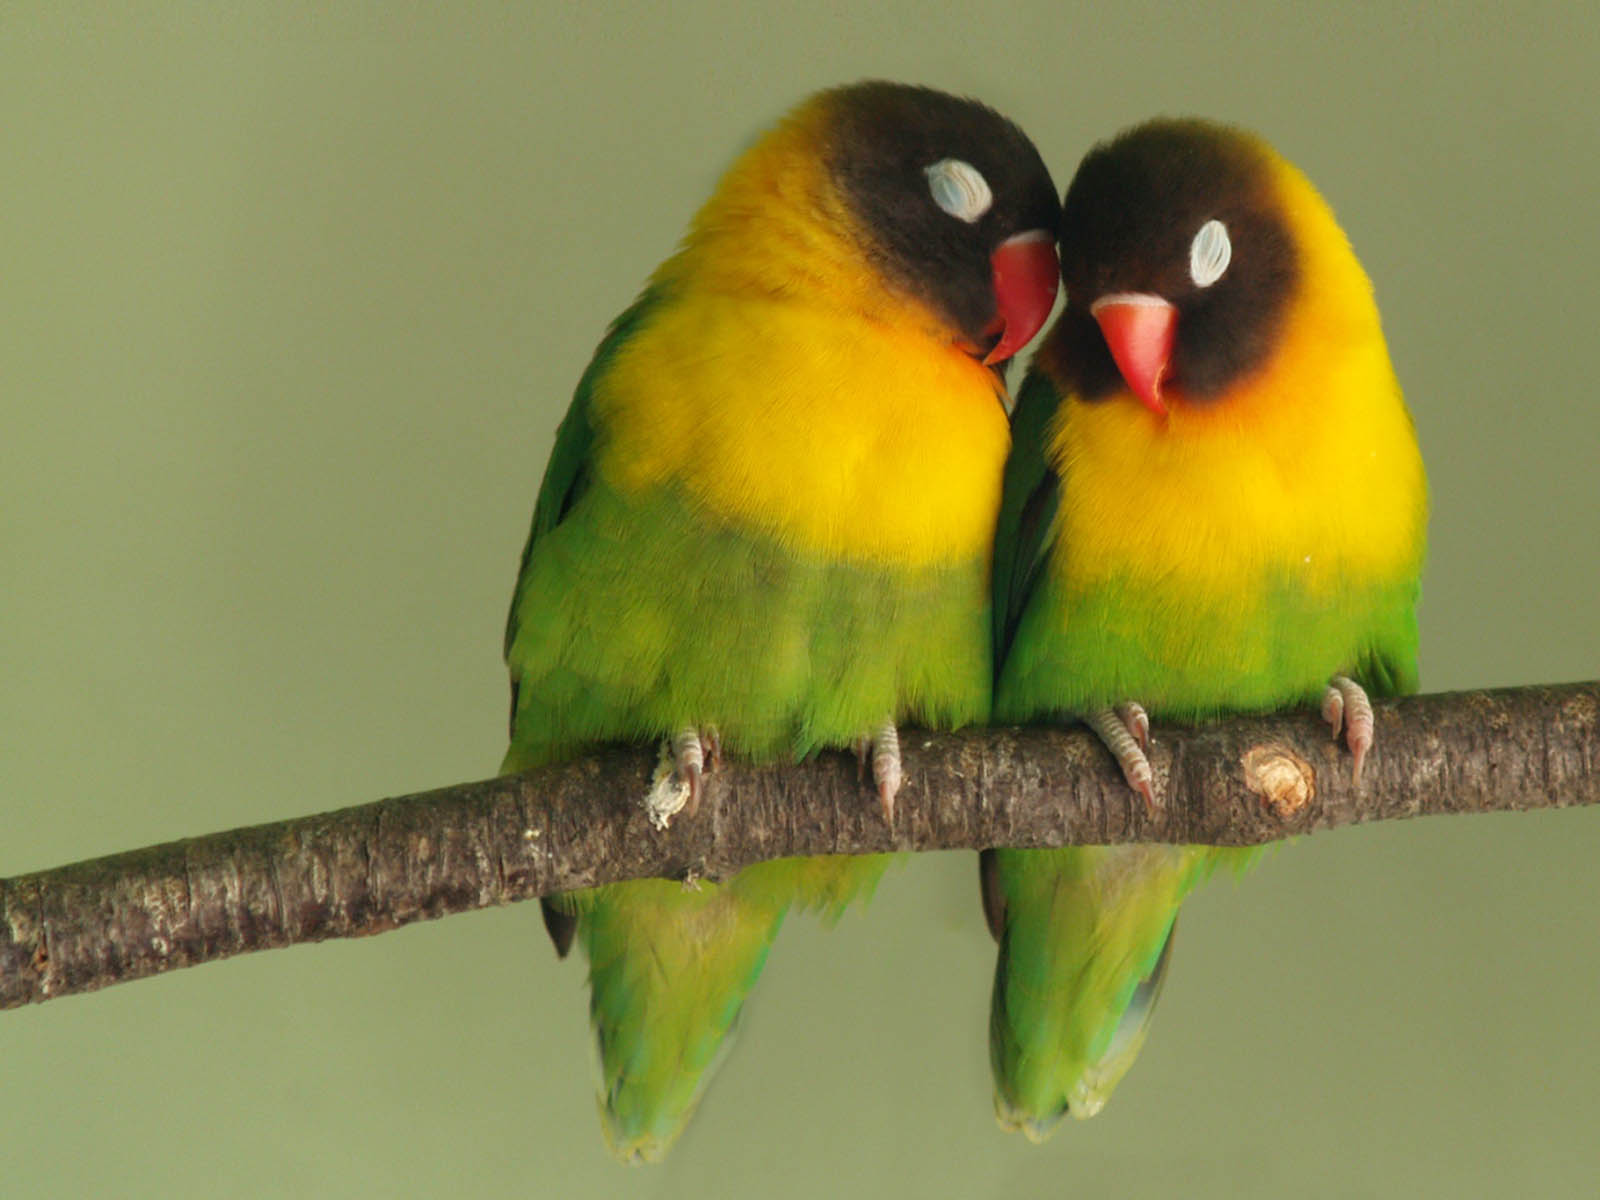 : Love Birds Wallpapers, Love Birds DesktopWallpapers, Love Birds